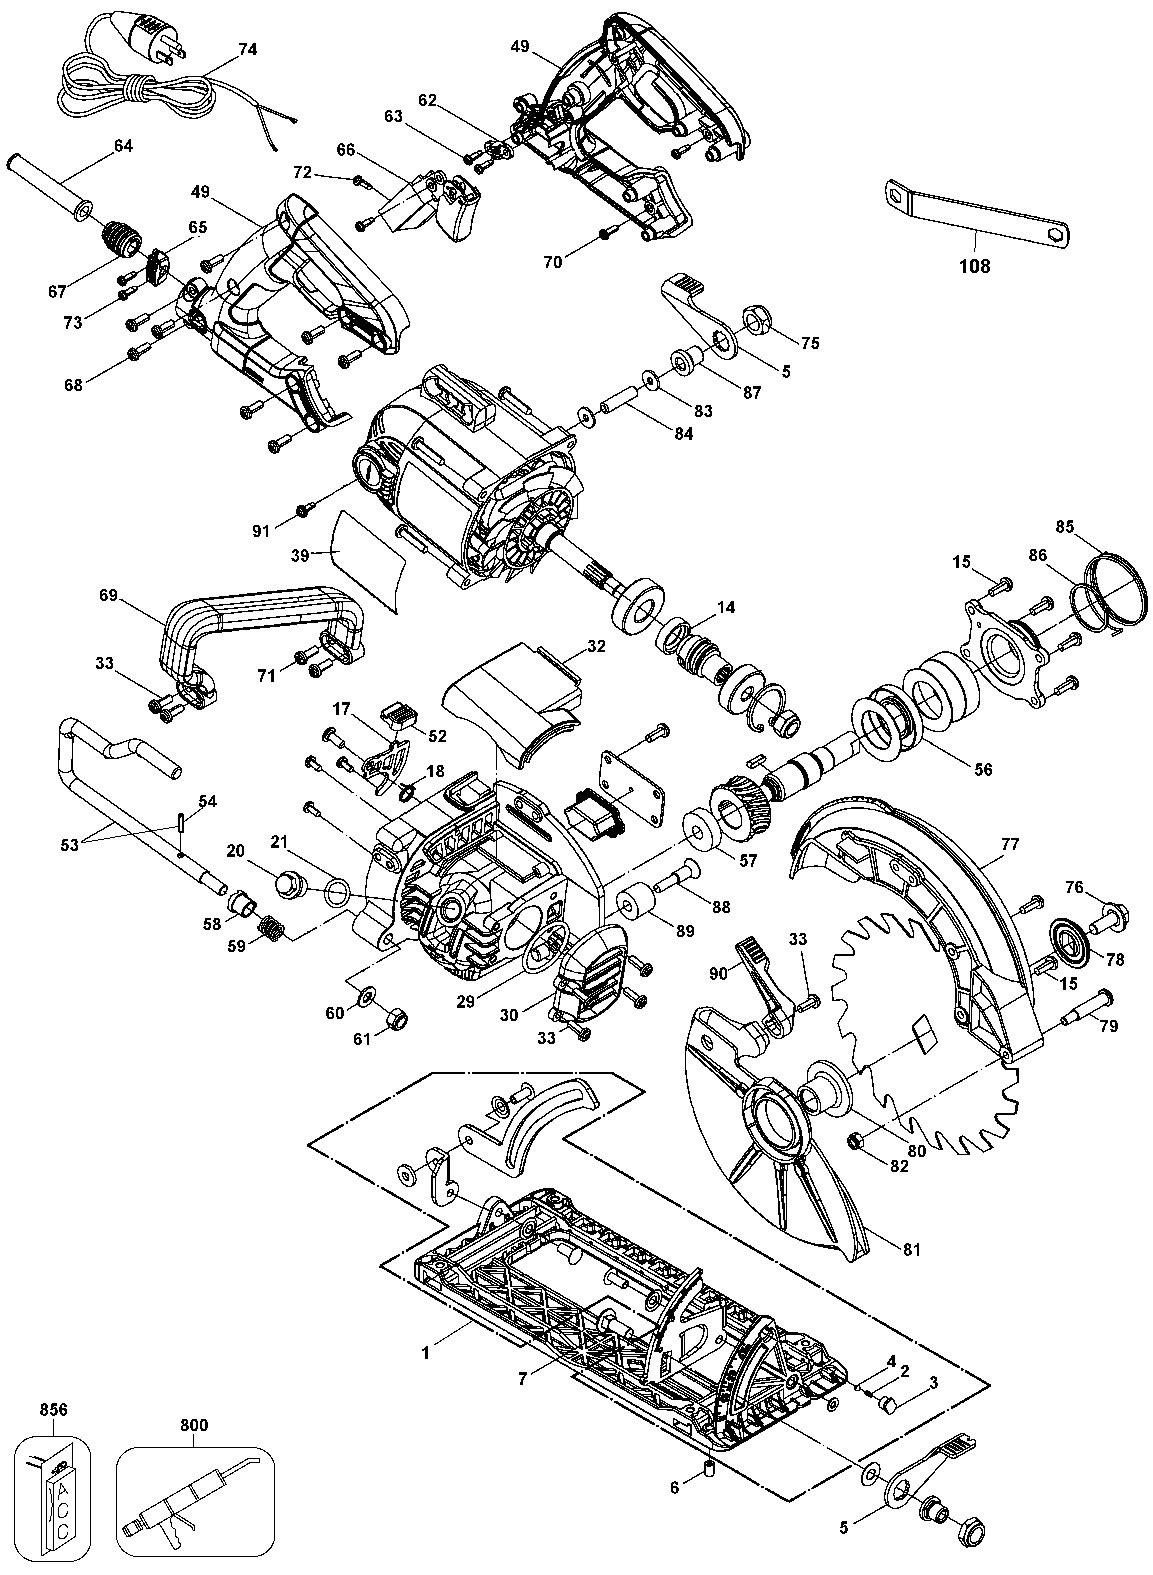 DWS535 - Worm Drive Circular Saw Parts schematic